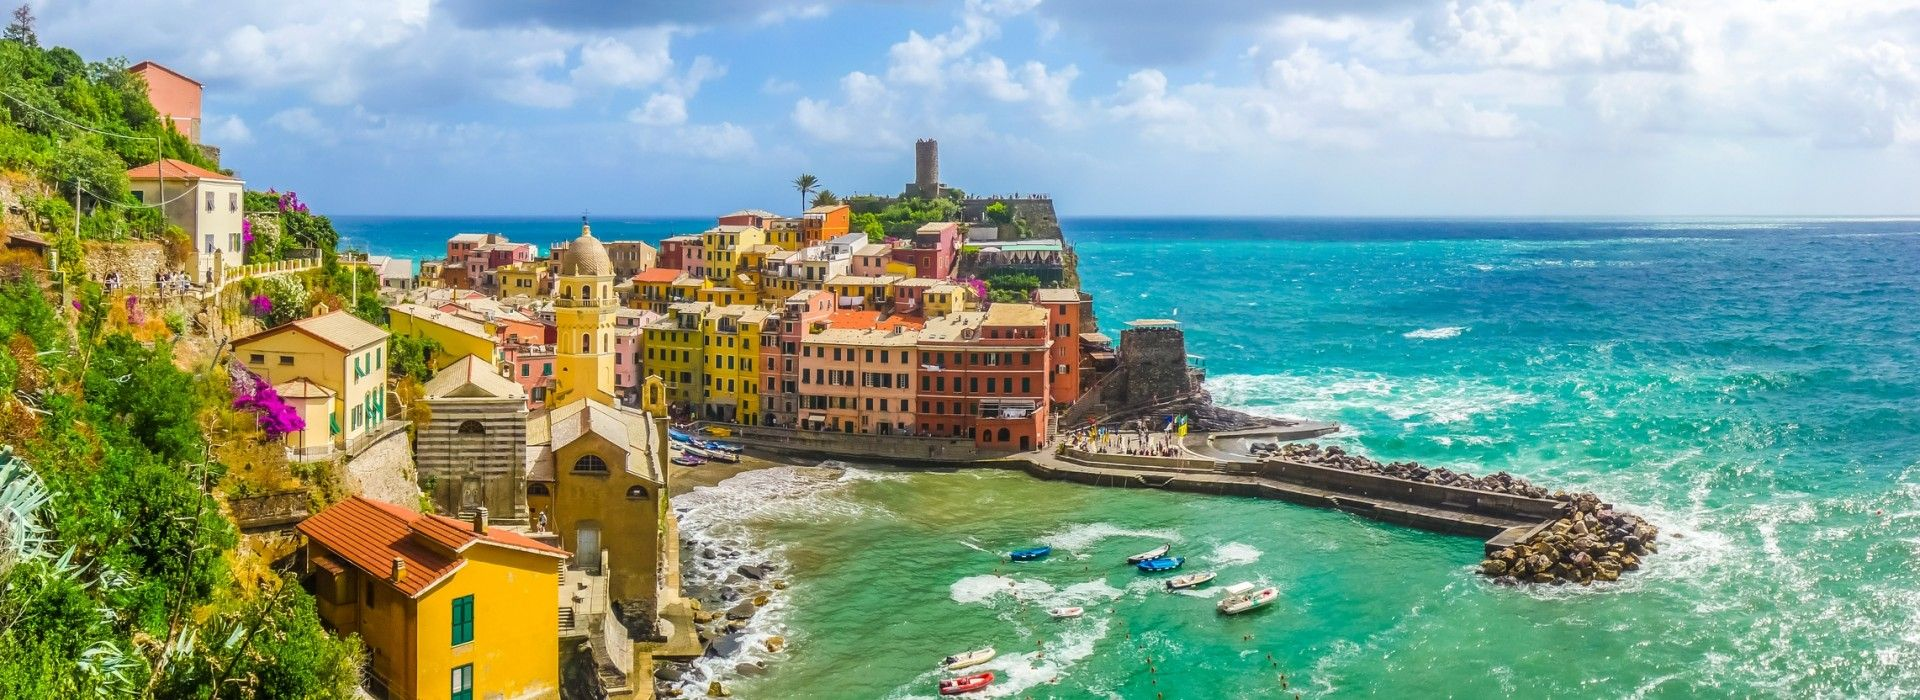 Cinque Terre and Liguria Tours